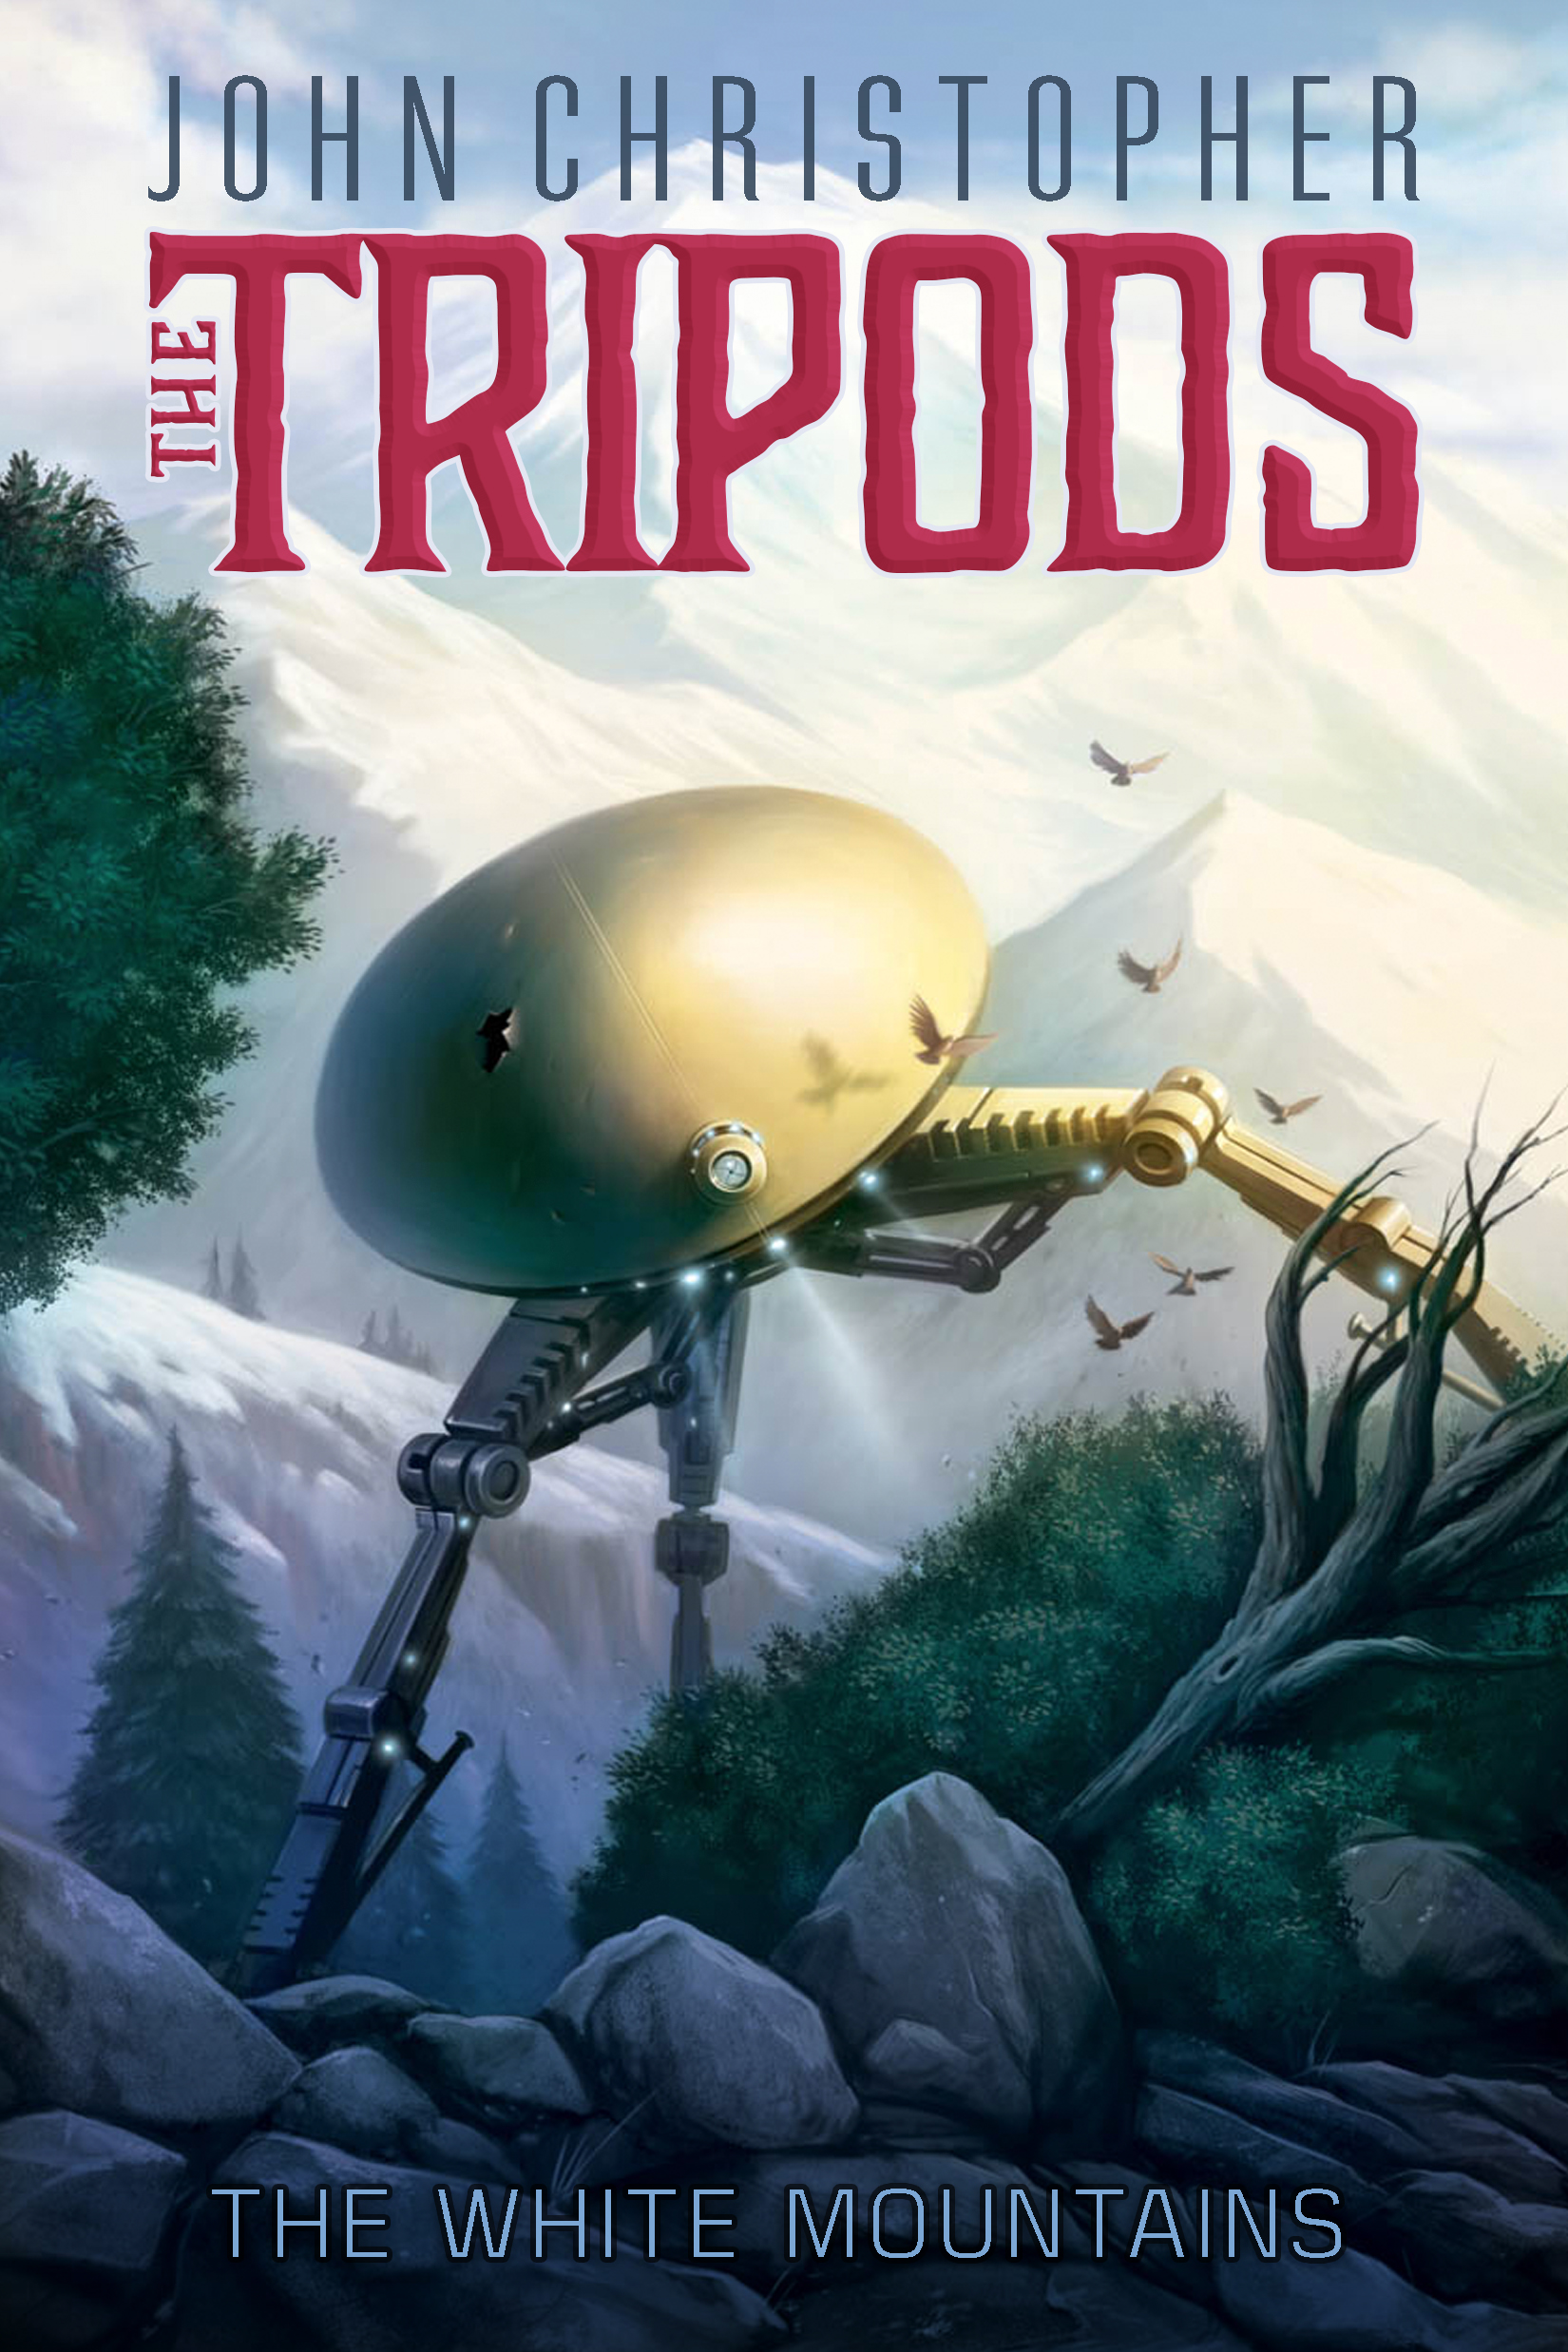 an analysis of the series of novels the tripods by john christopher The tripods refers to a young adult trilogy-and-a-prequel series of science fiction novels written by british author john christopher this series of novels.